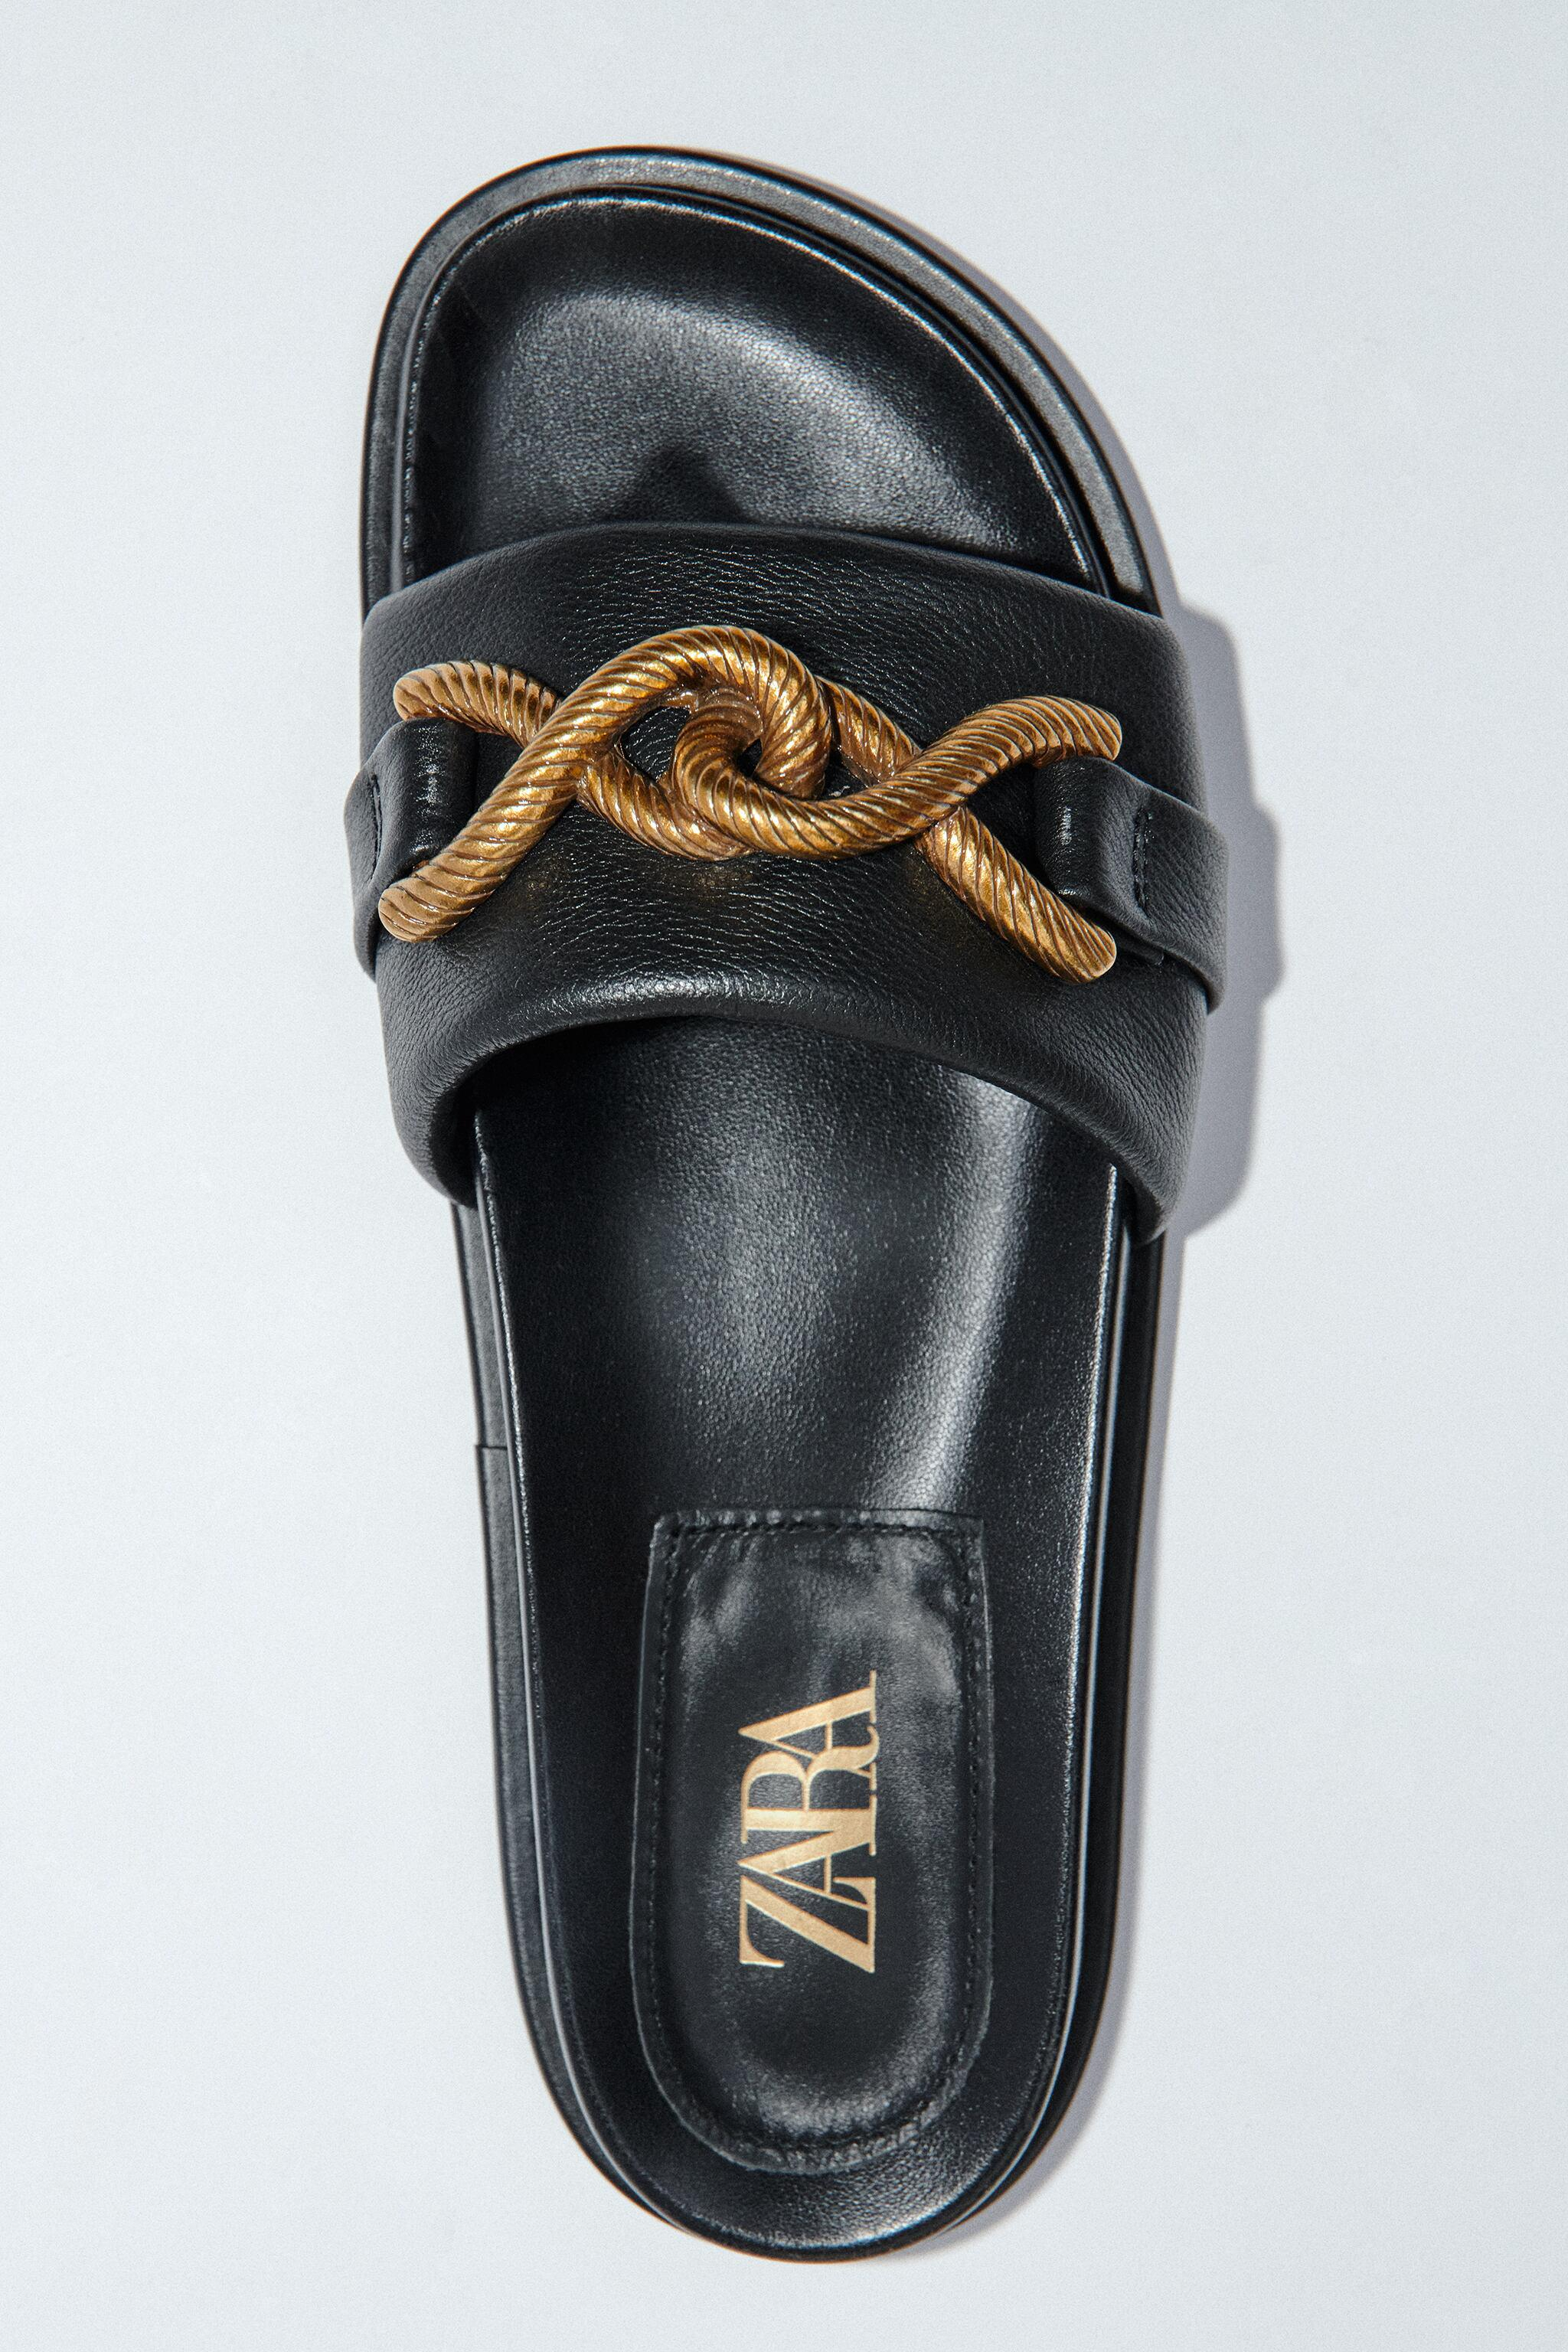 METAL BUCKLE FLAT LEATHER SANDALS 6